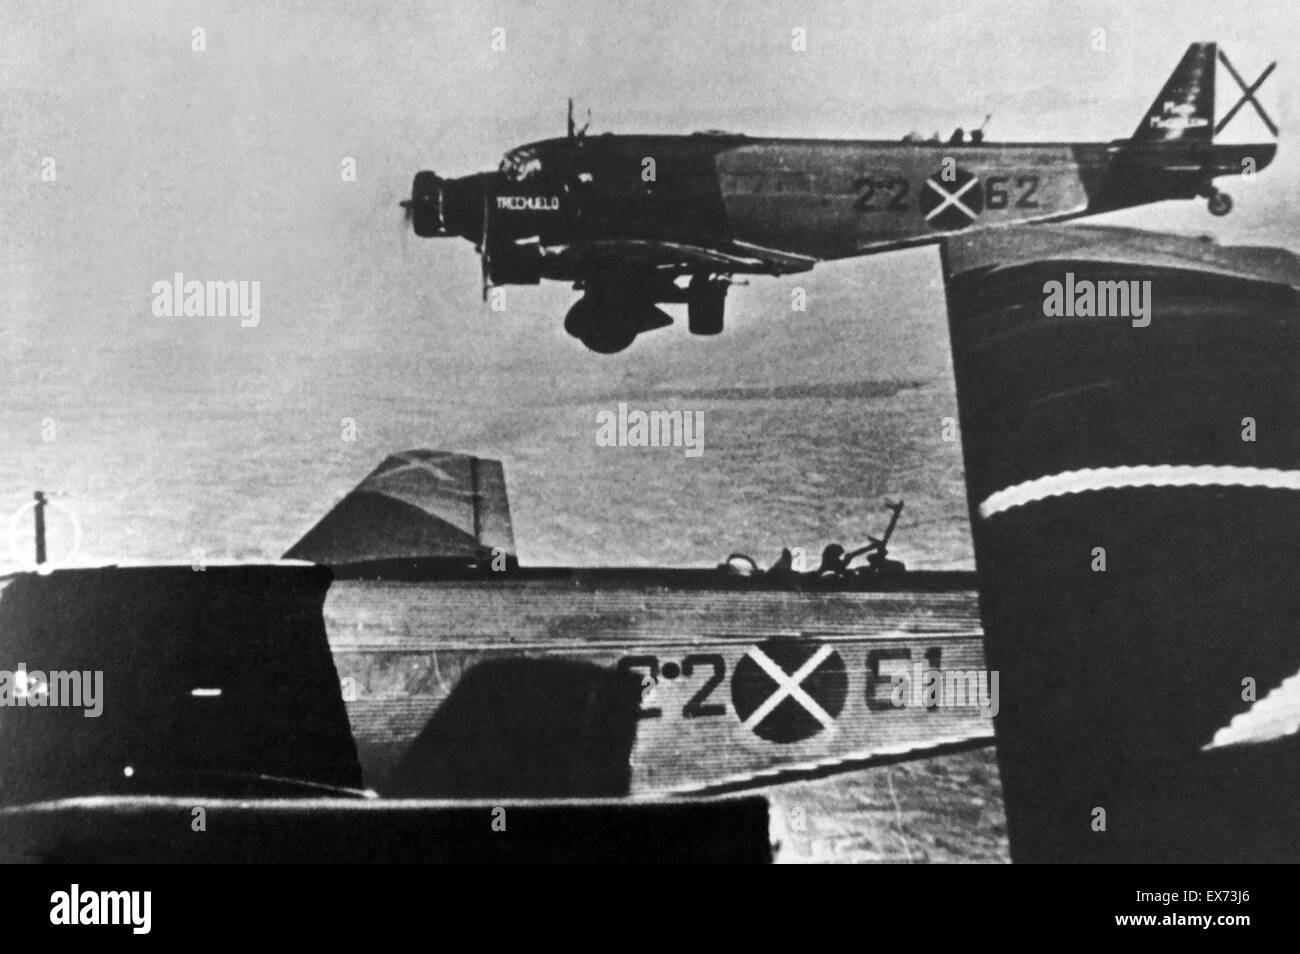 German aircraft used by the Nationalist air Force during the Spanish Civil War - Stock Image